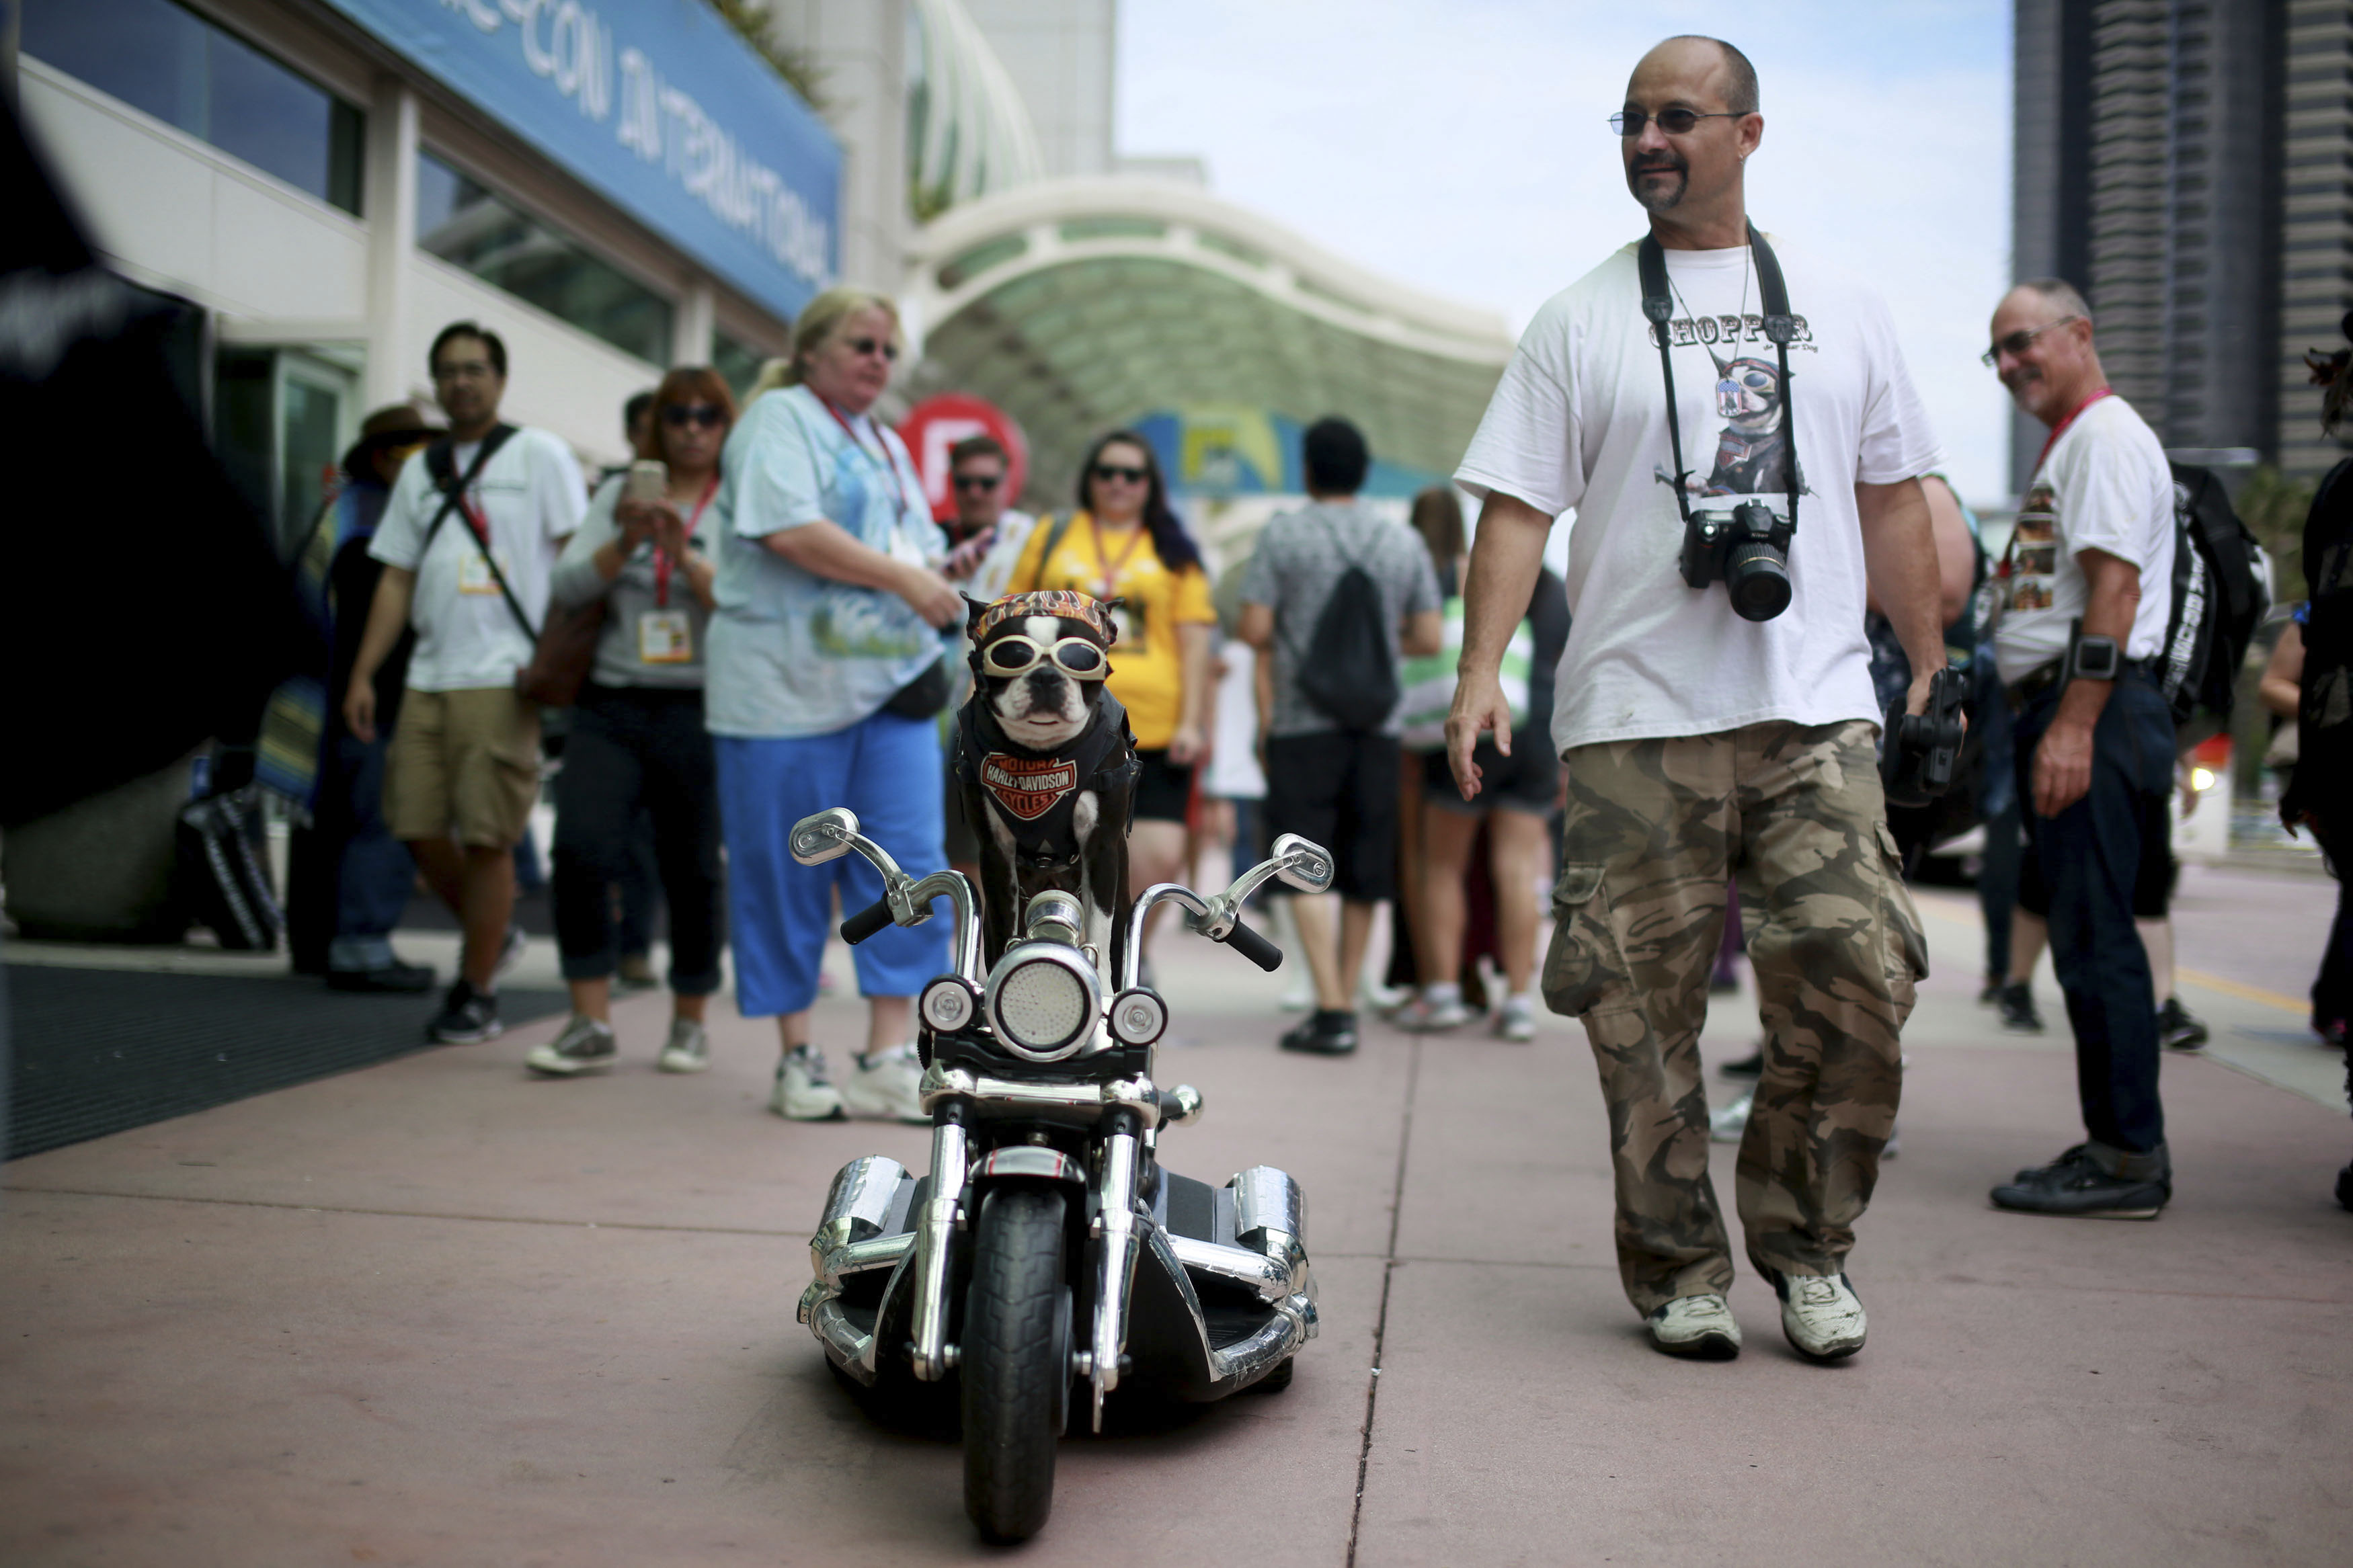 Mark Shaffer walks with Chopper The Biker Dog outside of the San Diego Convention Center during the 2014 Comic-Con International Convention in San Diego, California July 25, 2014.